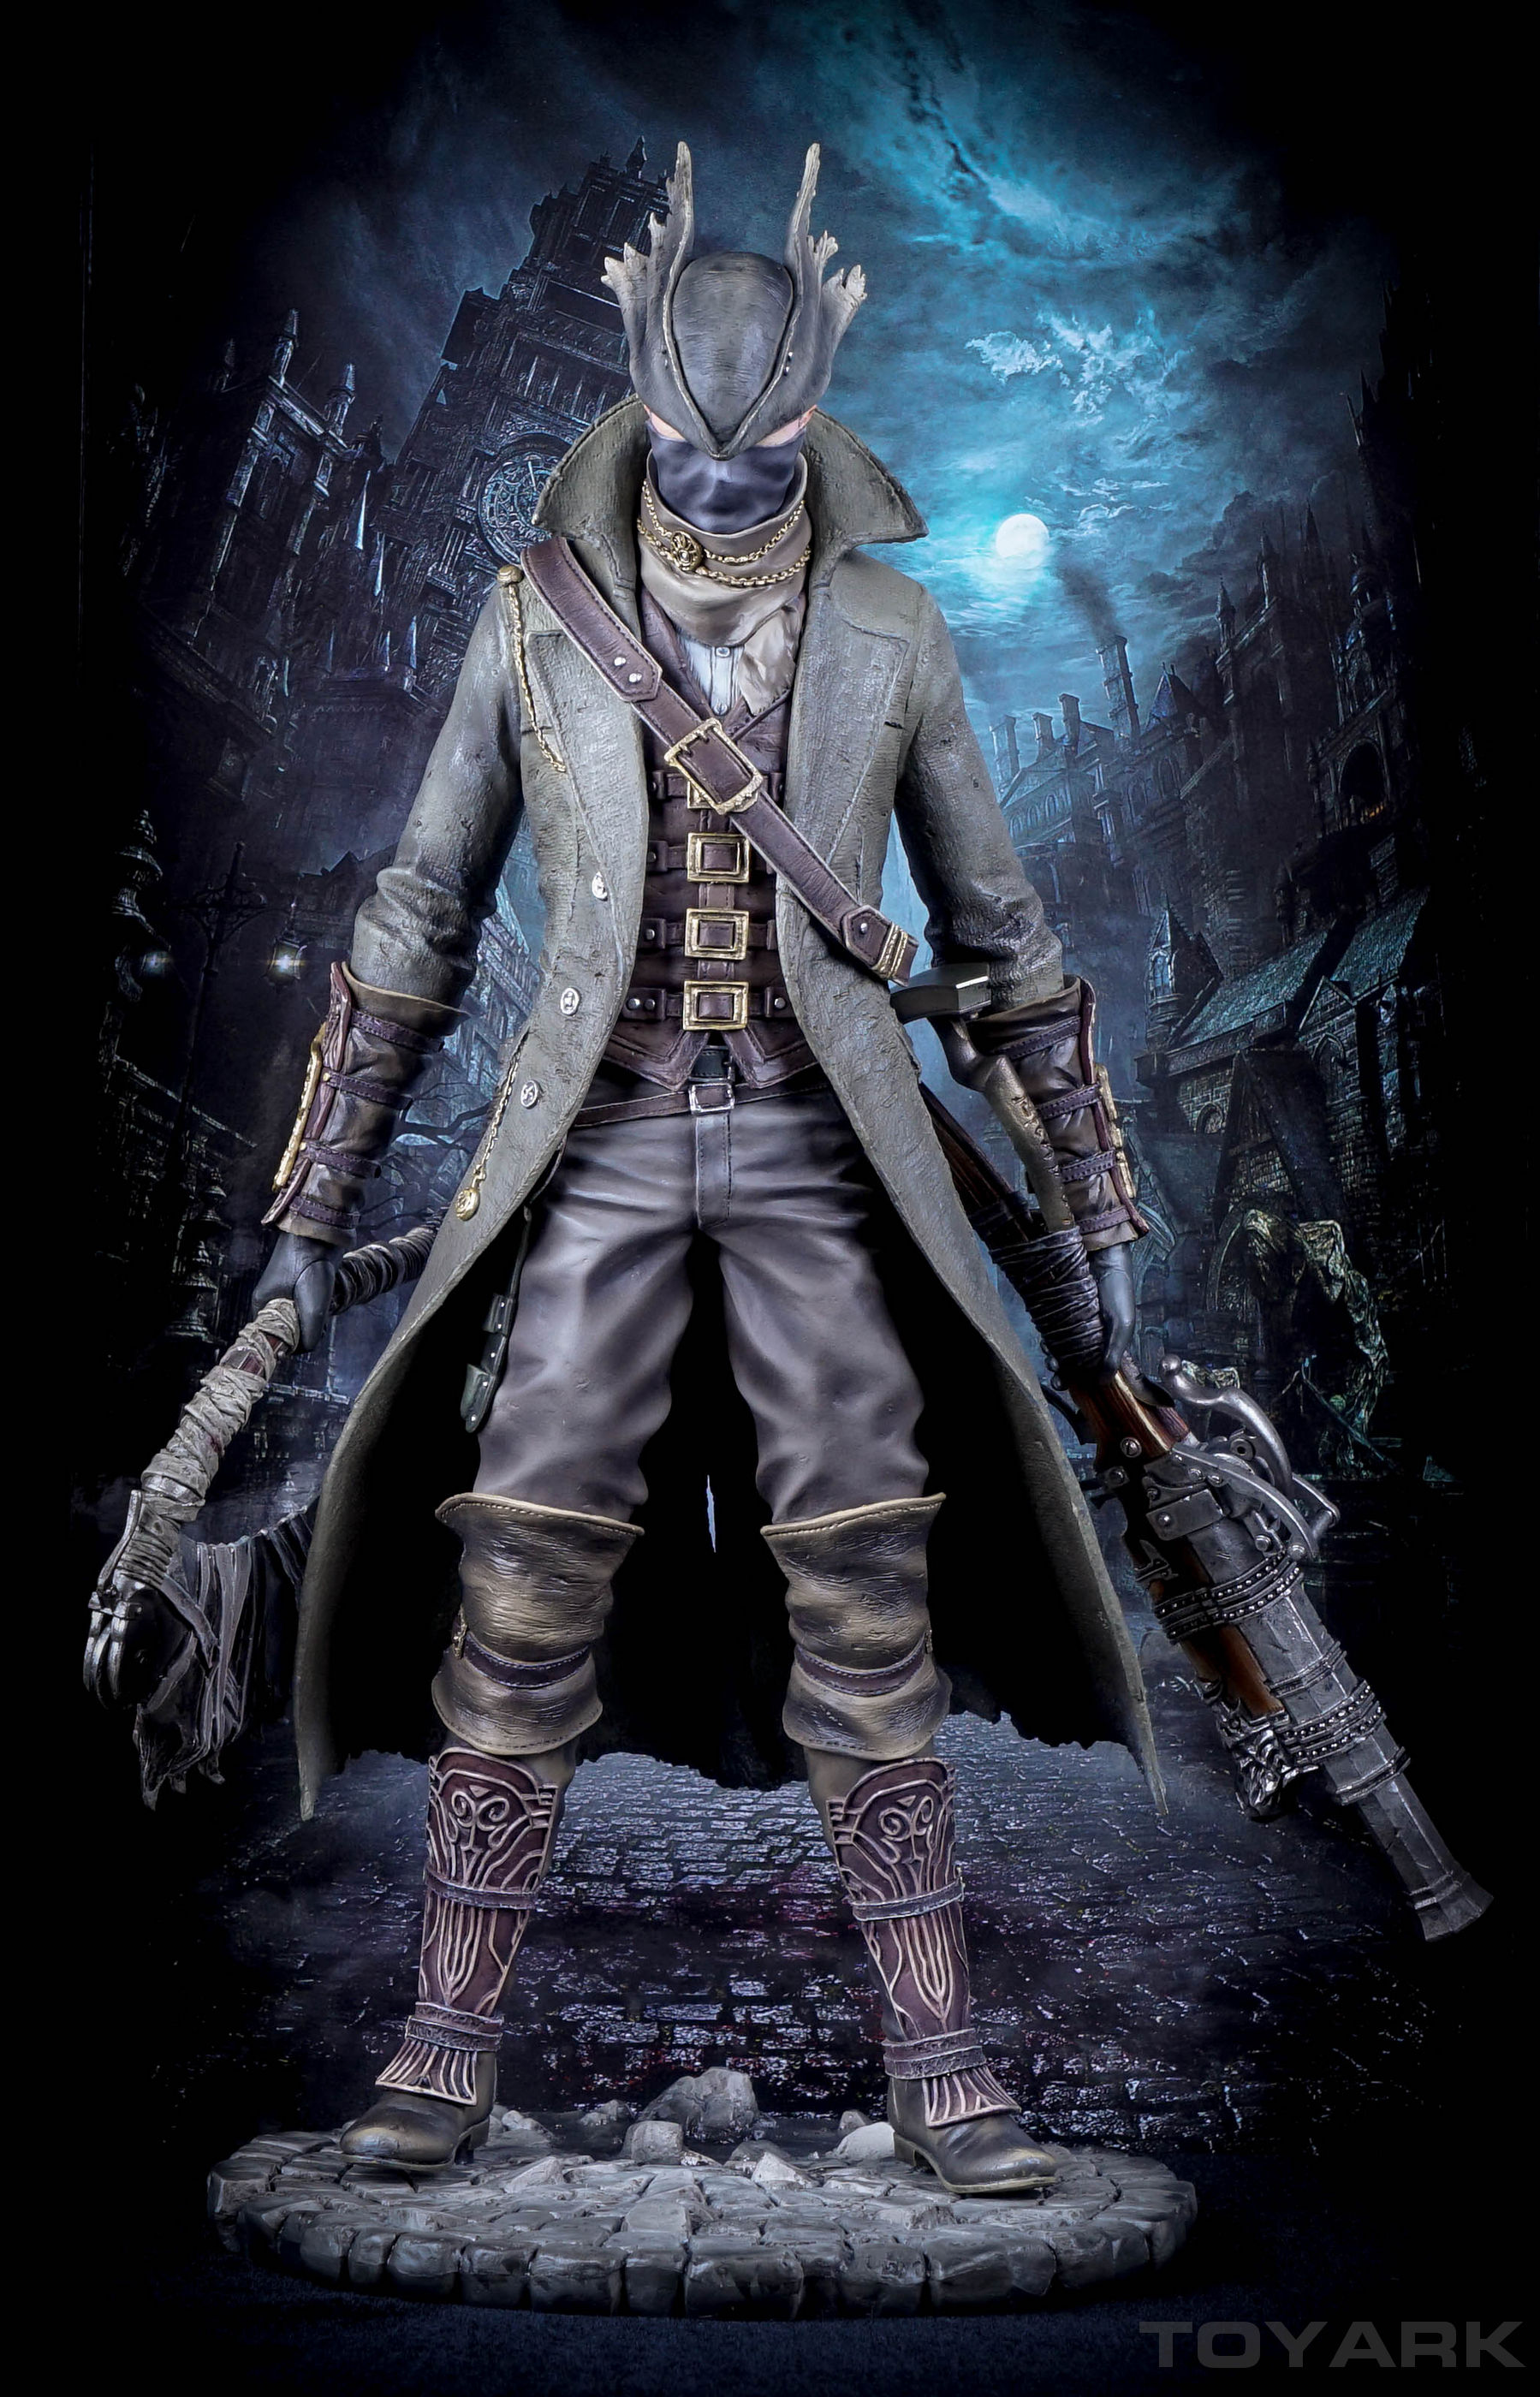 https://news.toyark.com/wp-content/uploads/sites/4/2016/01/Gecco-Hunter-bloodborne-008.jpg